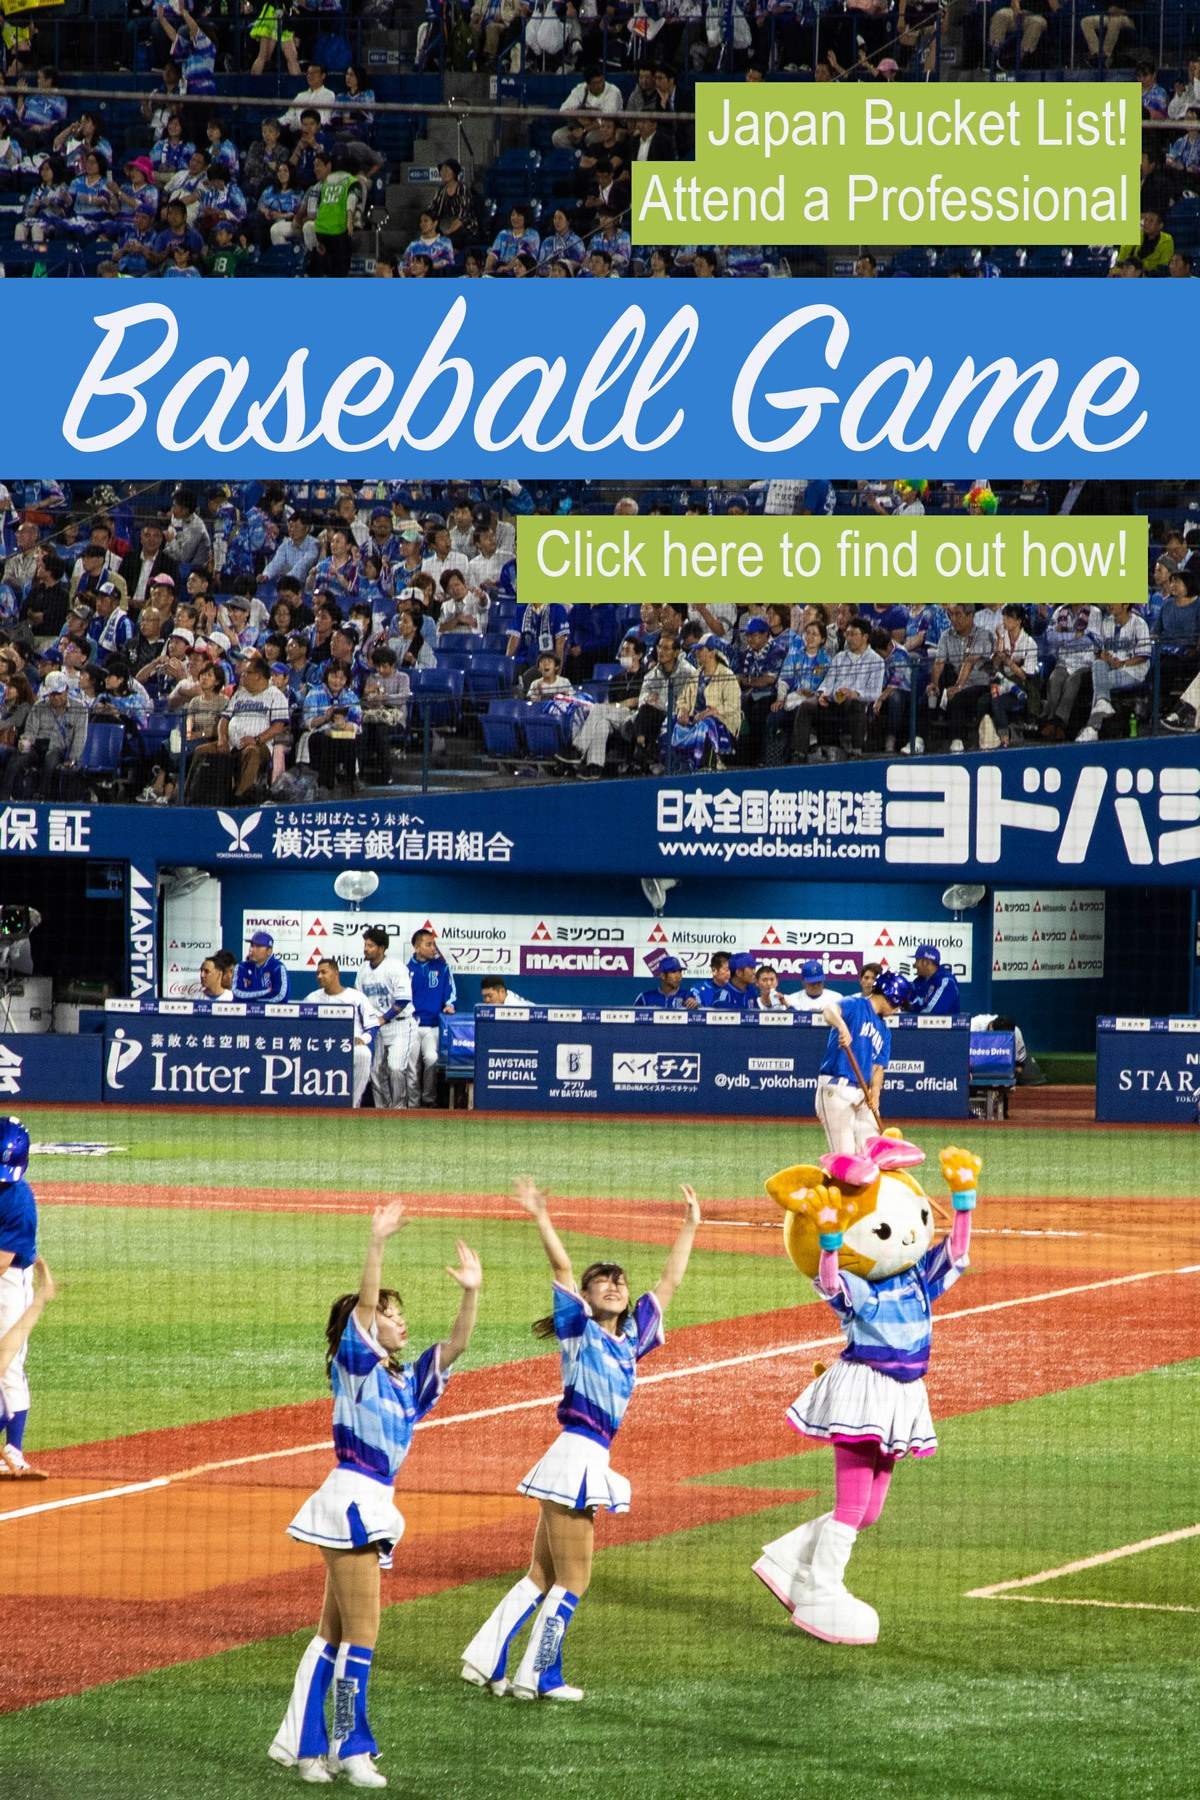 Looking for a great summer activity to do in Japan? Go to a Baseball game!